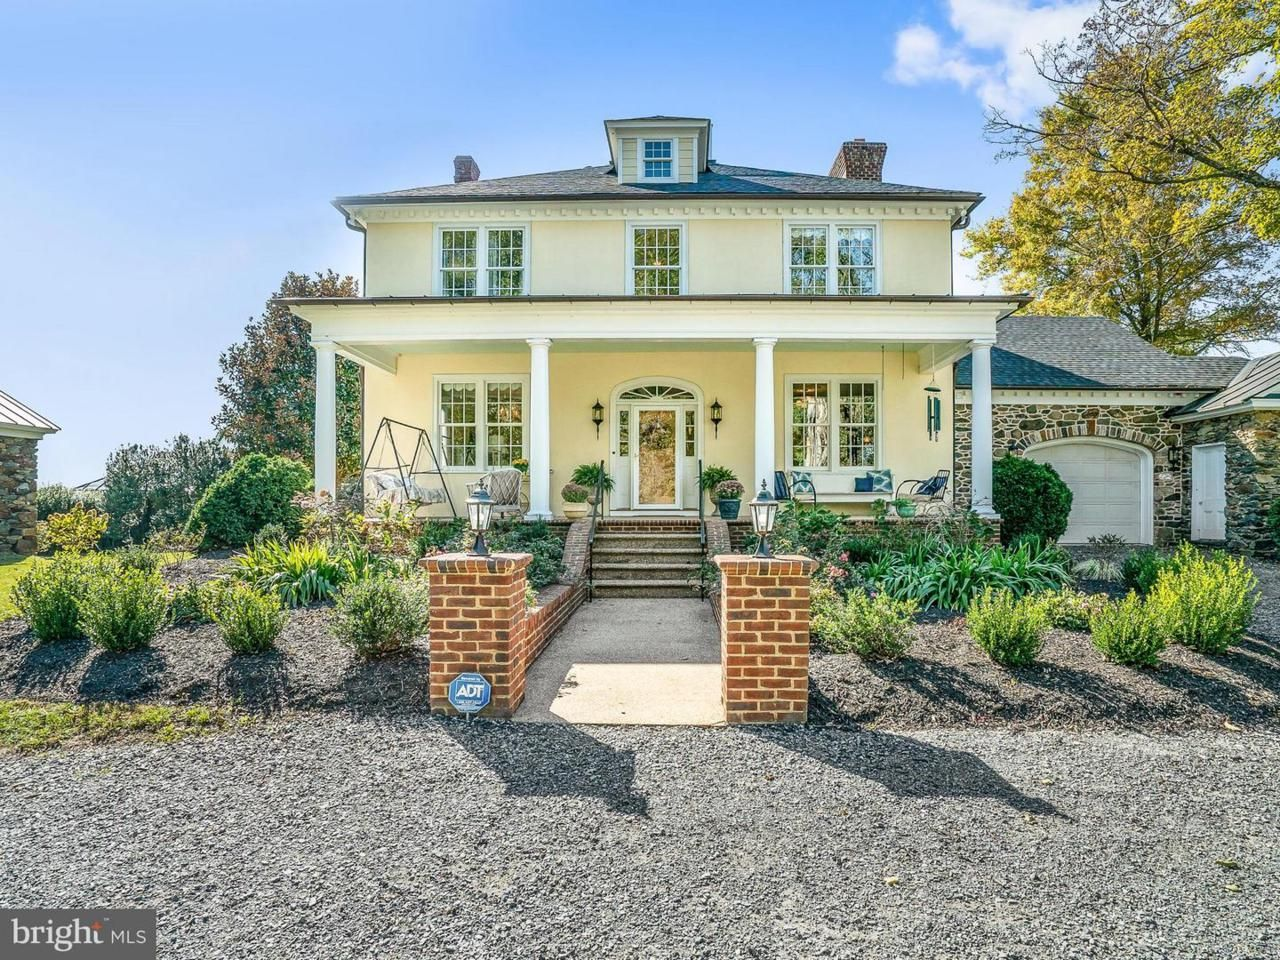 35175 Snickersville Turnpike Old houses for sale